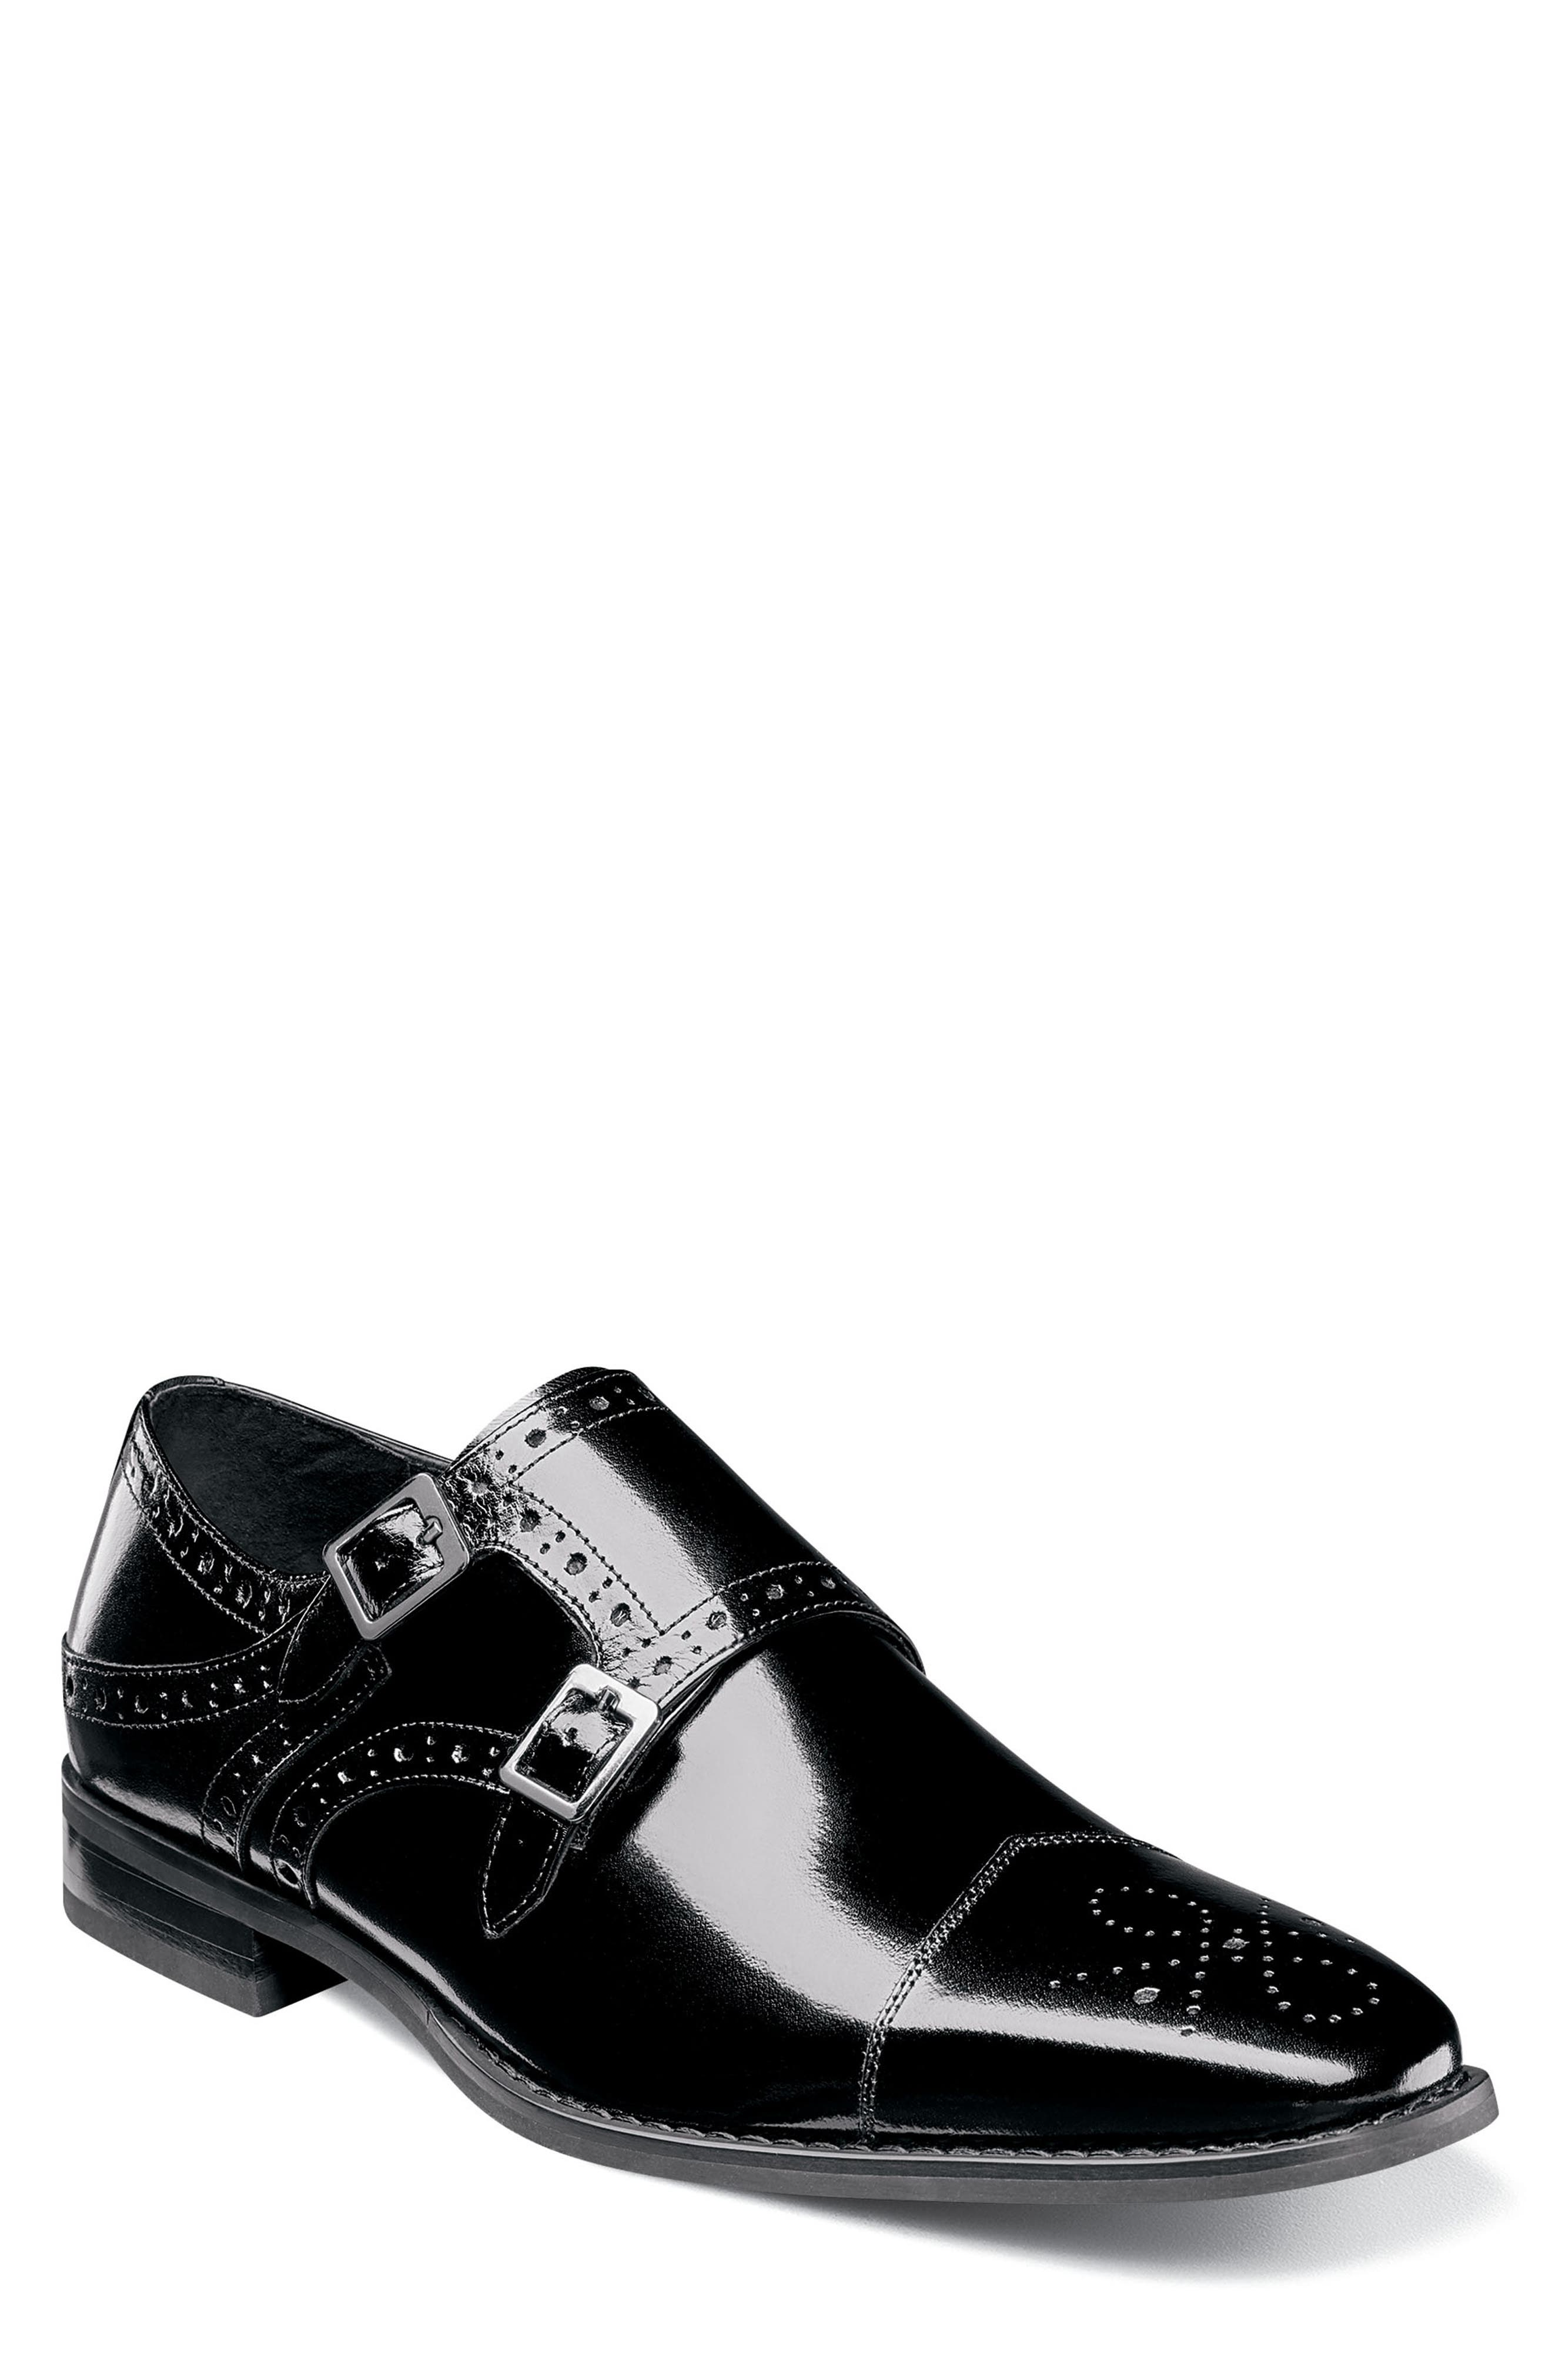 STACY ADAMS Tayton Cap Toe Double Strap Monk Shoe, Main, color, BLACK LEATHER